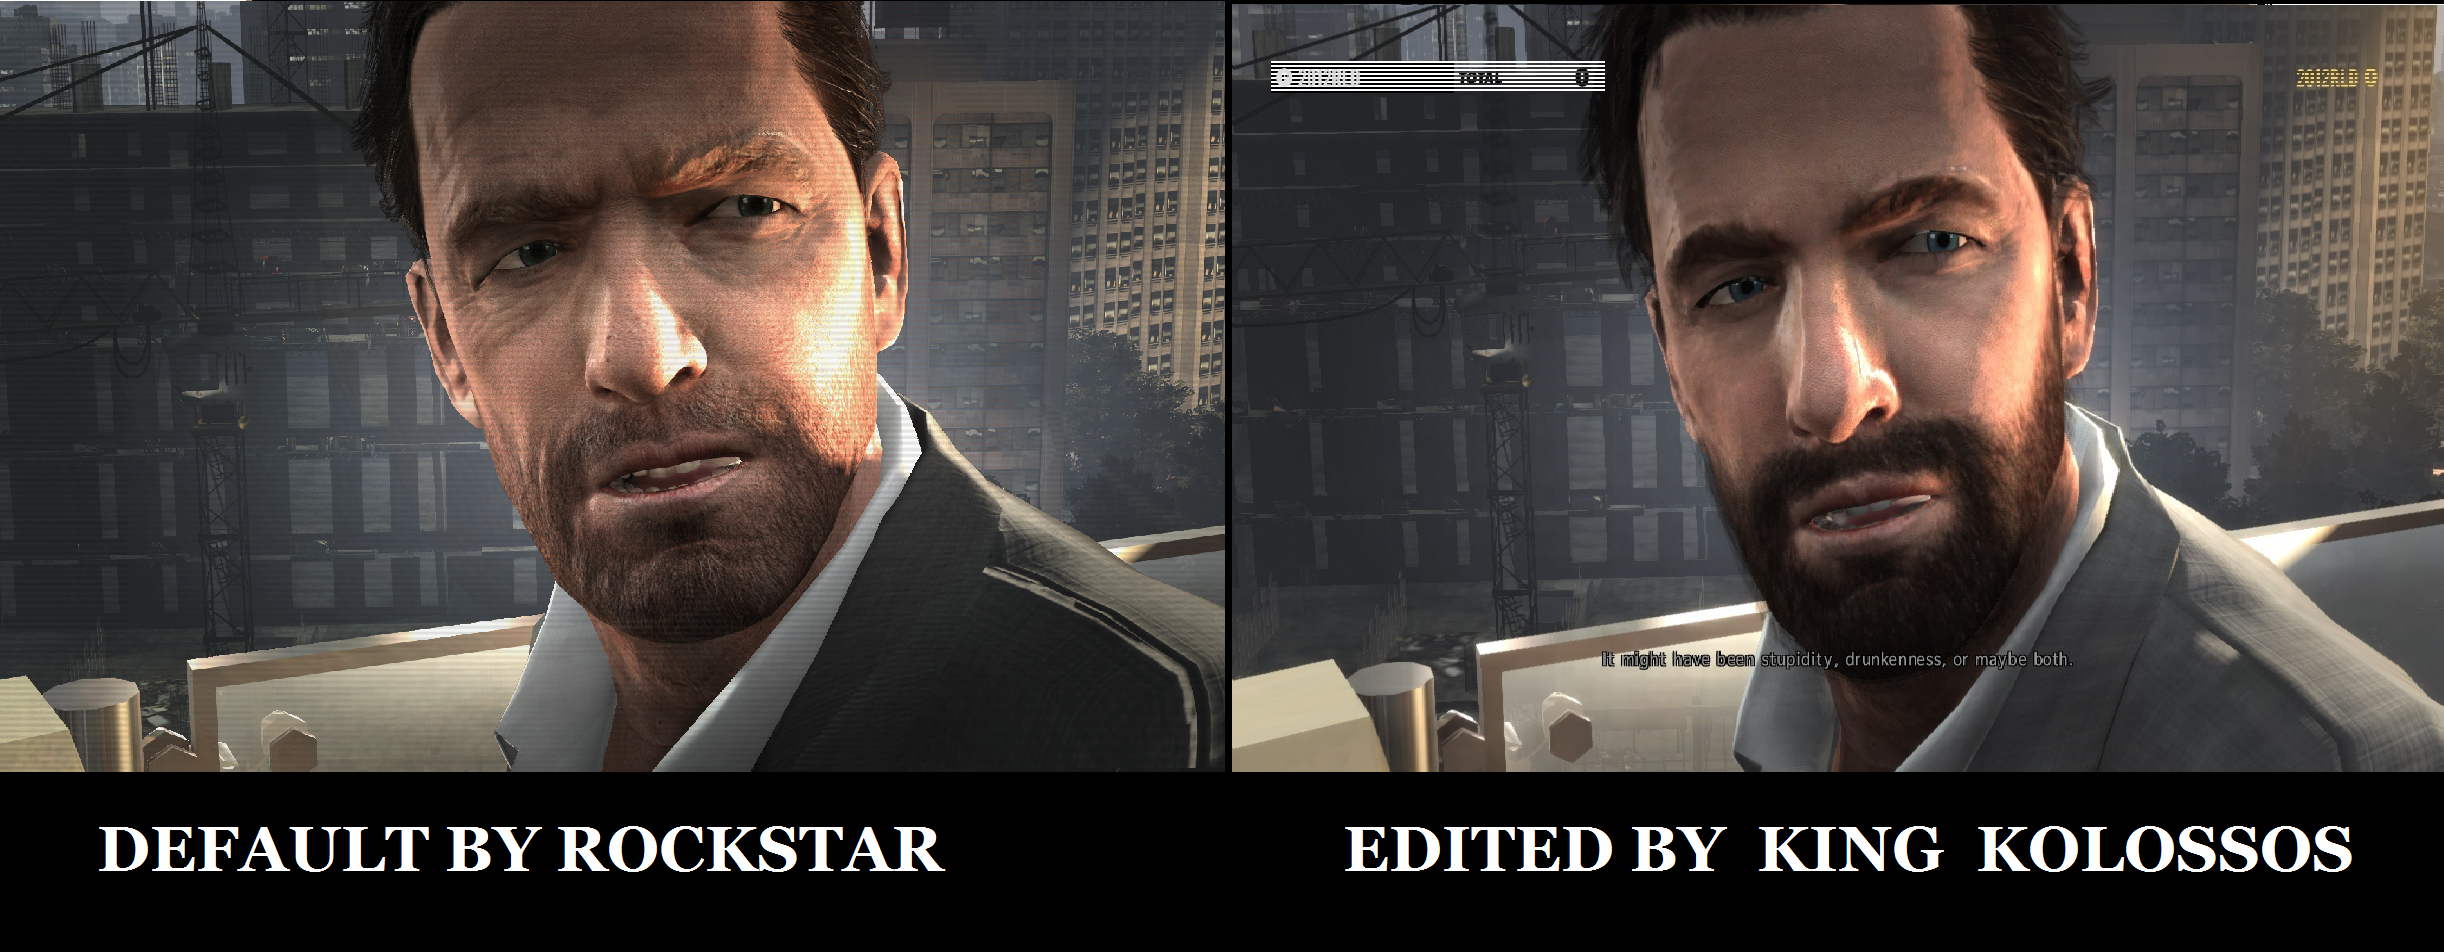 Another Comparison Image Max Payne 3 King Kolossos Face